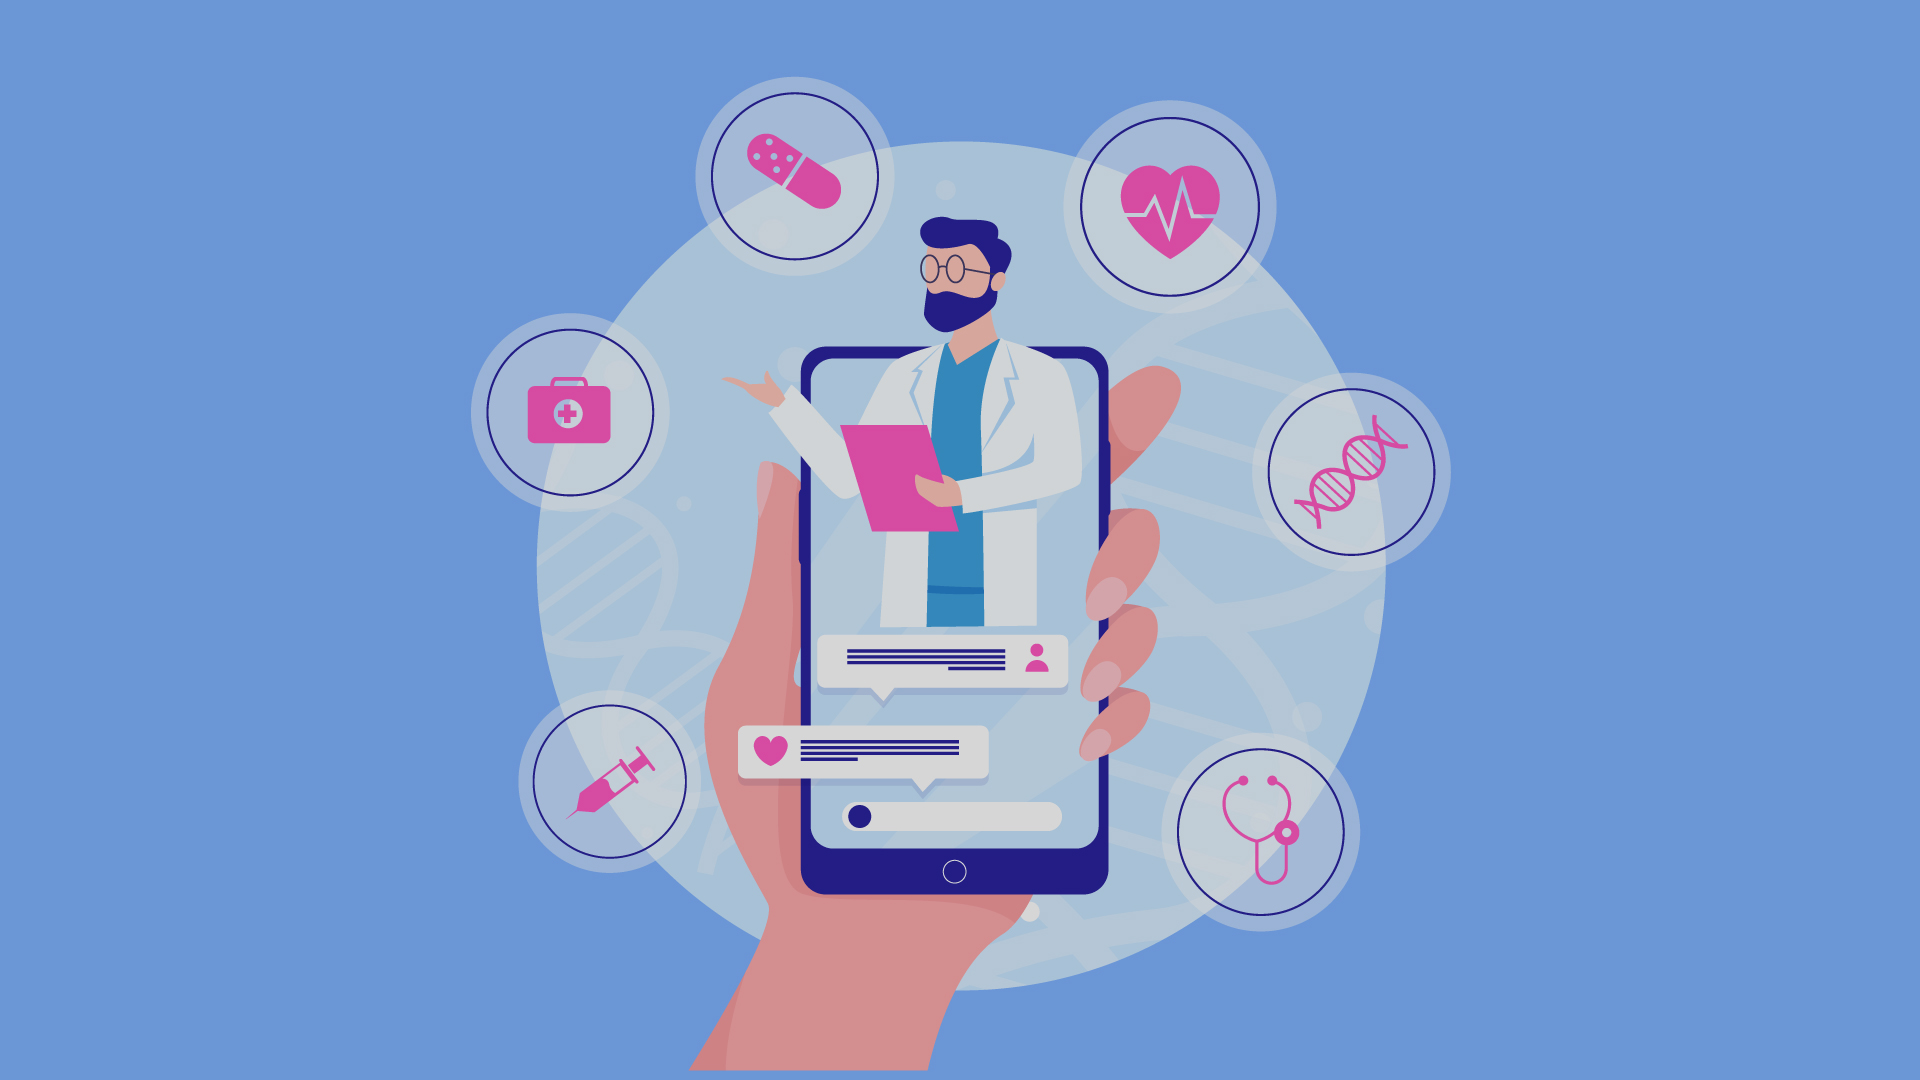 A ghraphical model of doctor's medical operations are connected to online technology to avail for patients